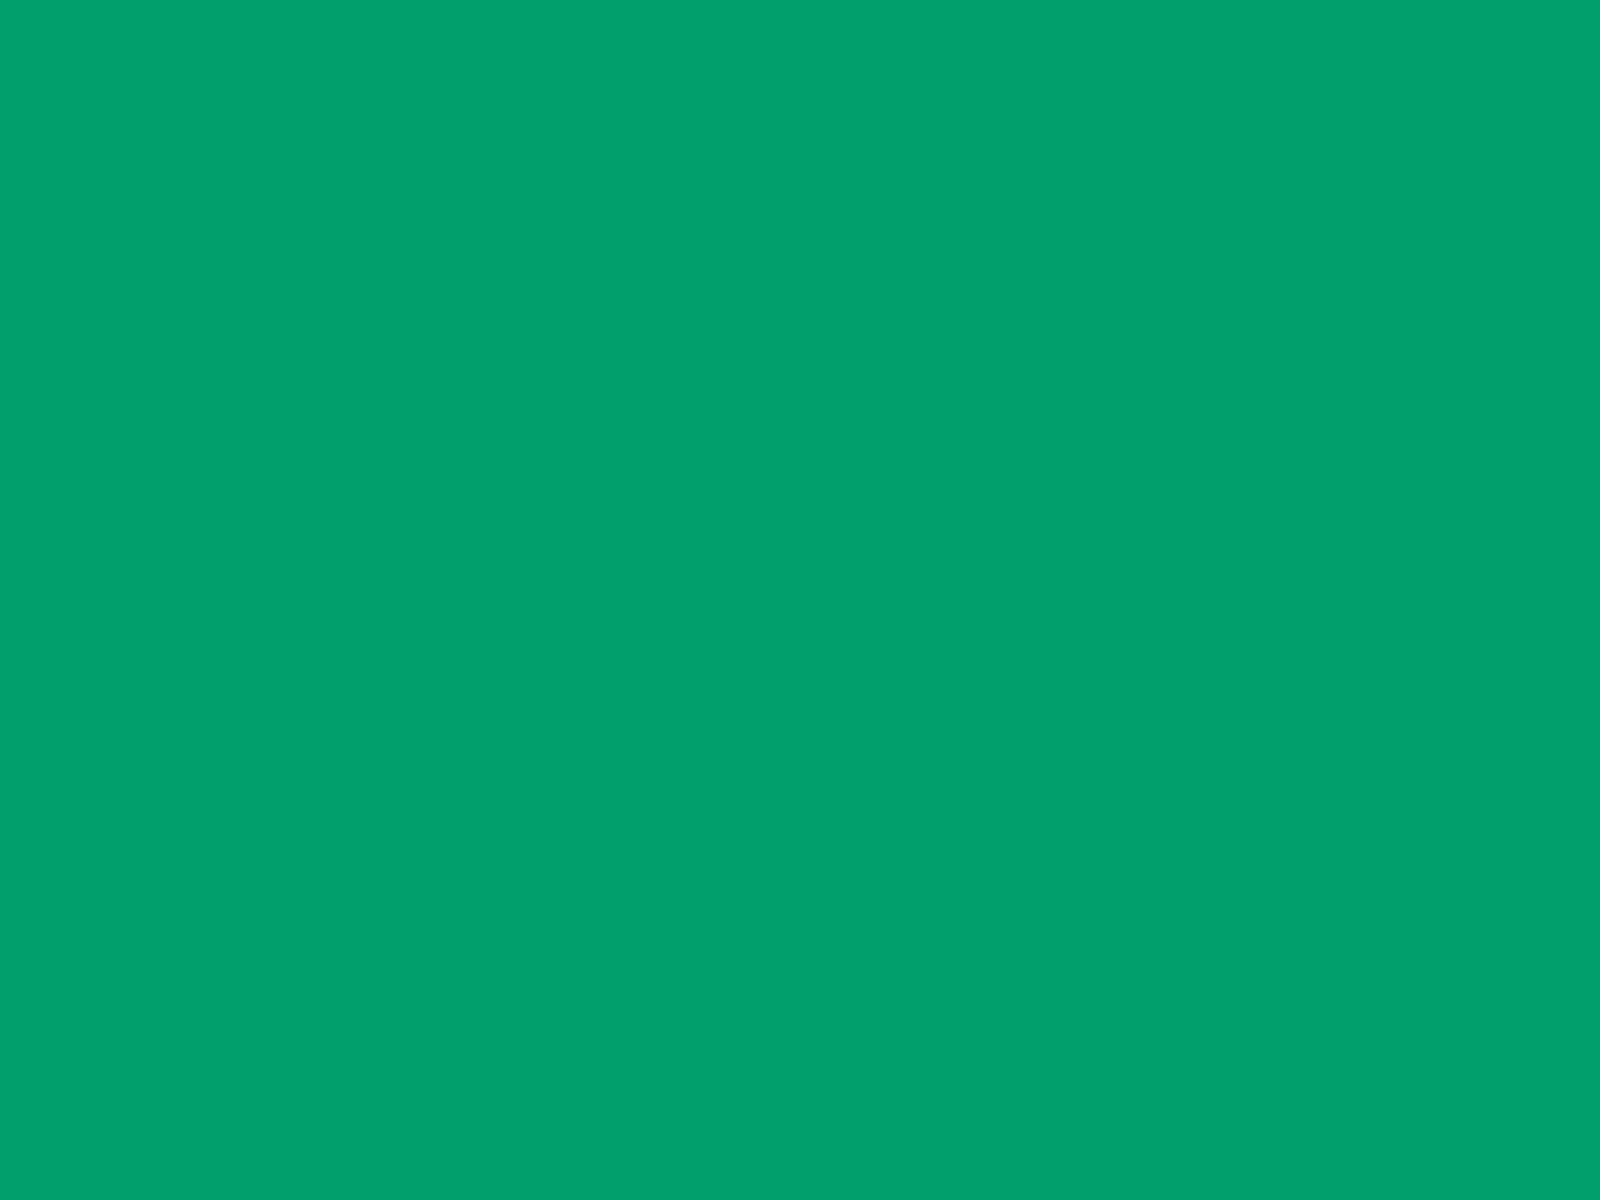 1600x1200 Green NCS Solid Color Background